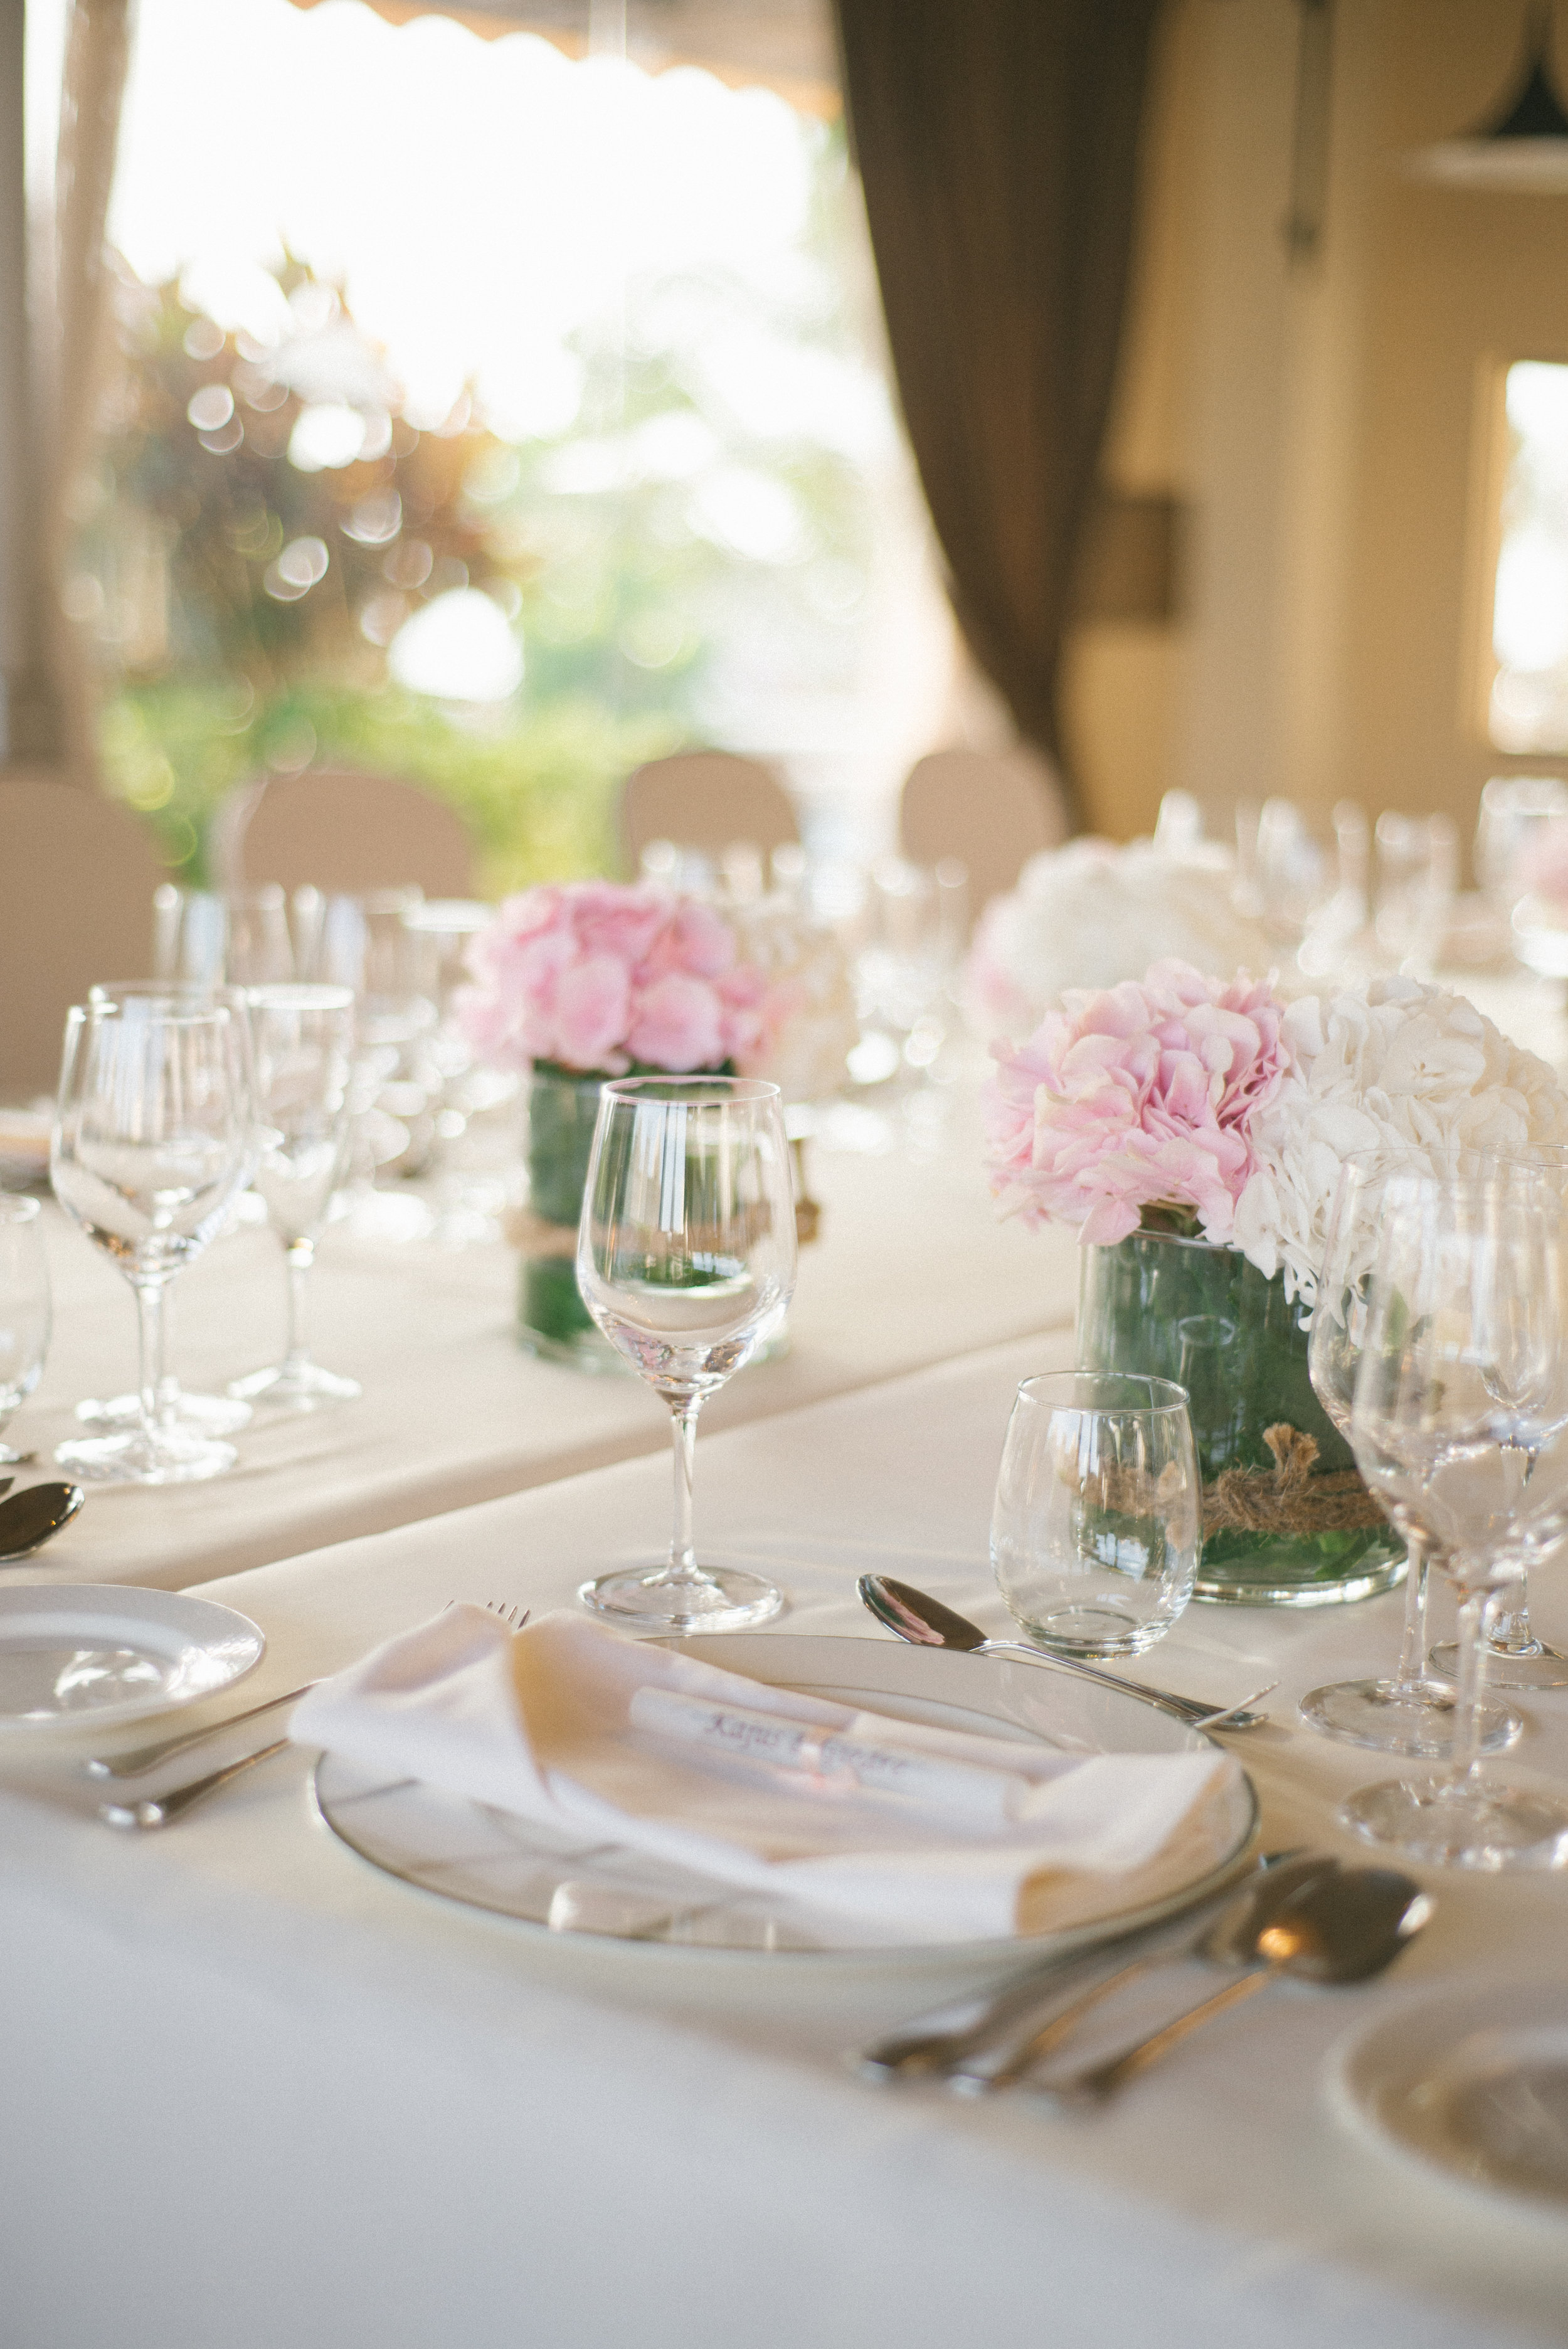 Minimalistic table decor by external suppliers